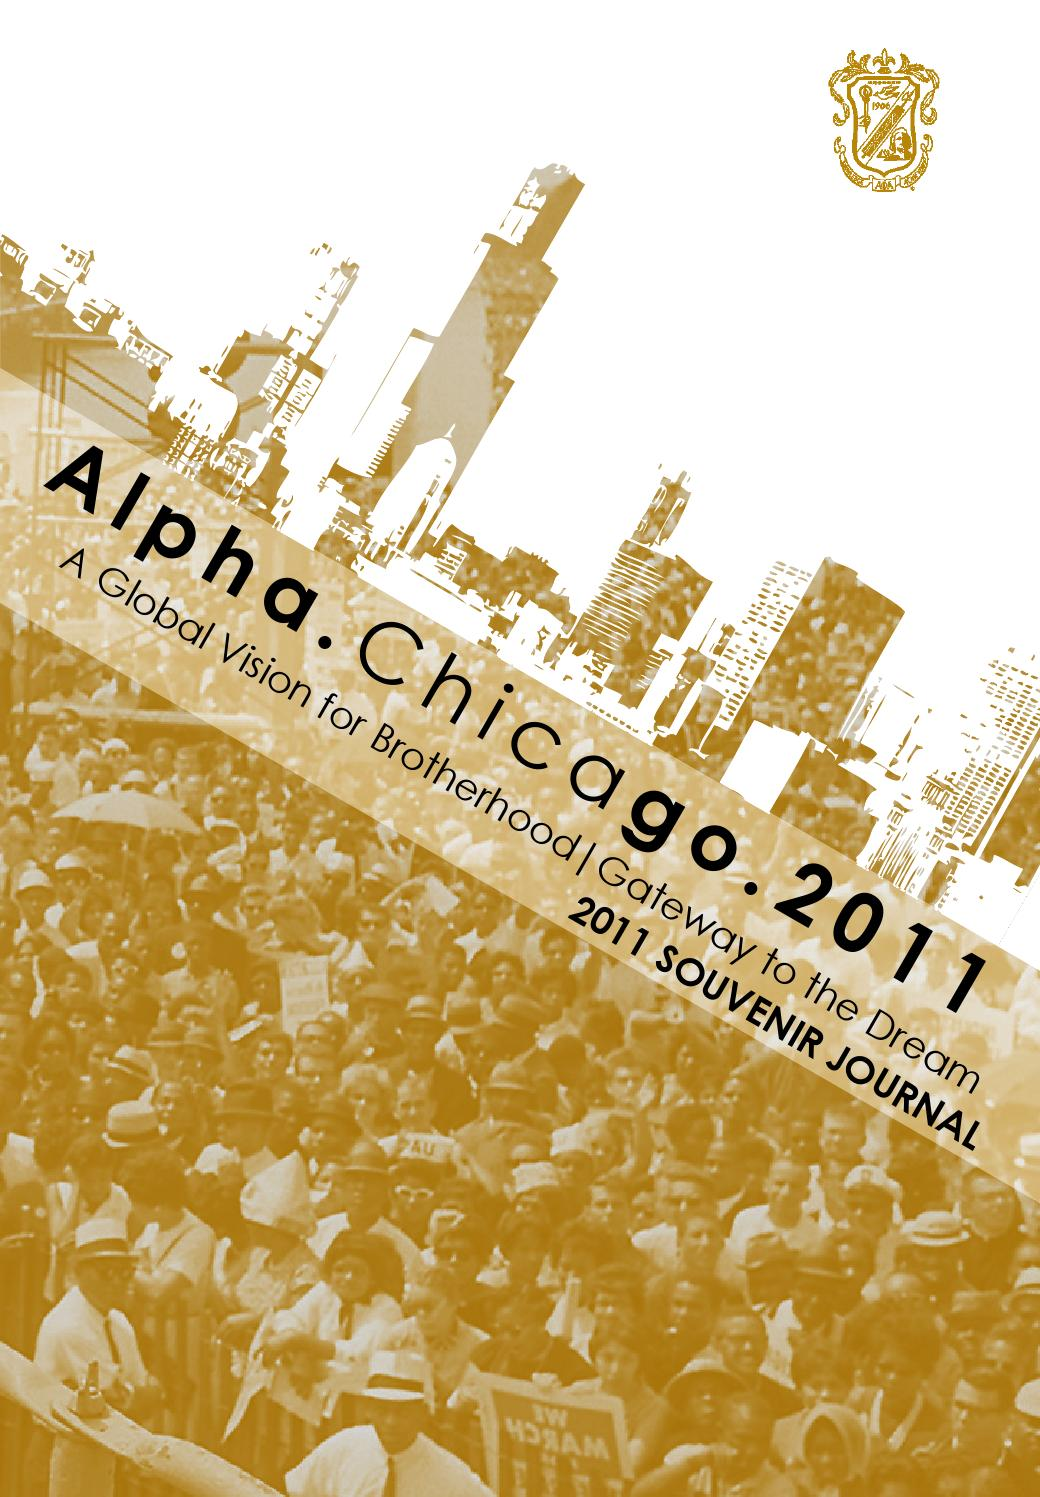 2011 Chicago General Convention Souvenir Journal by Alpha